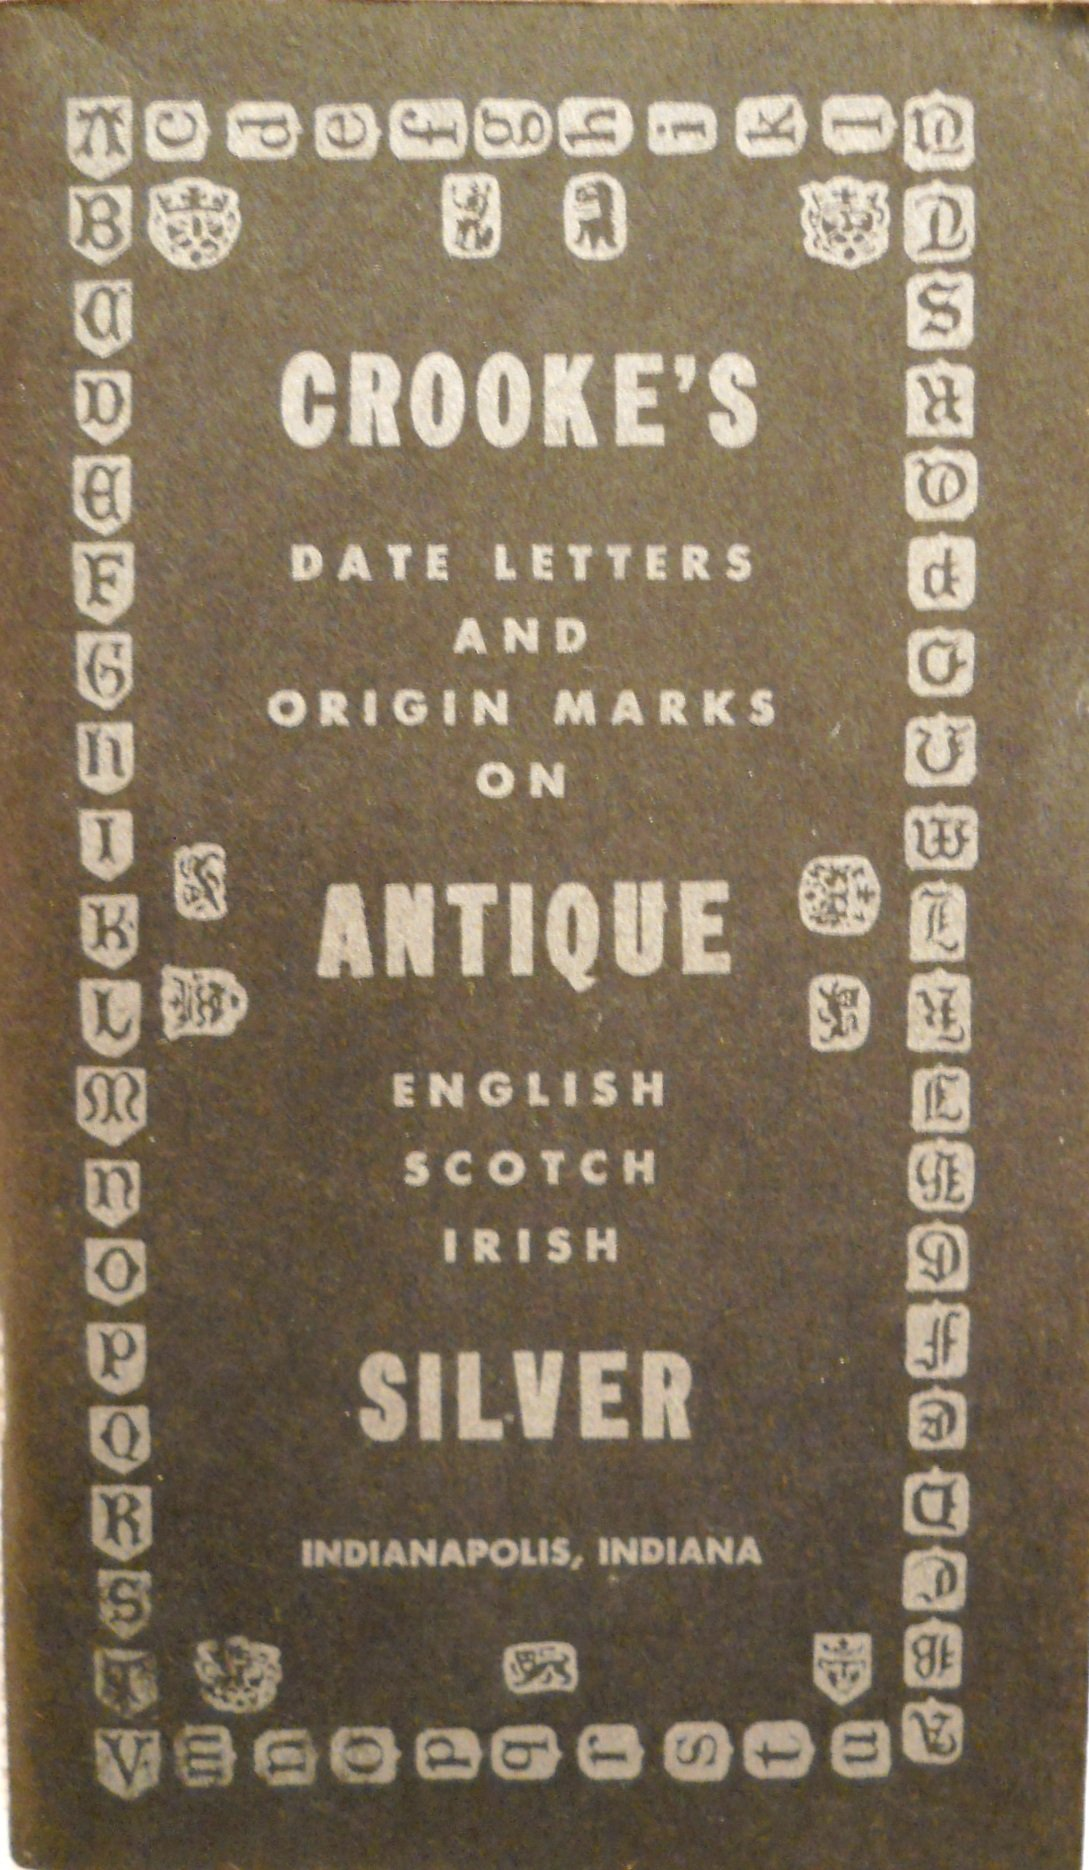 Dating english silver marks